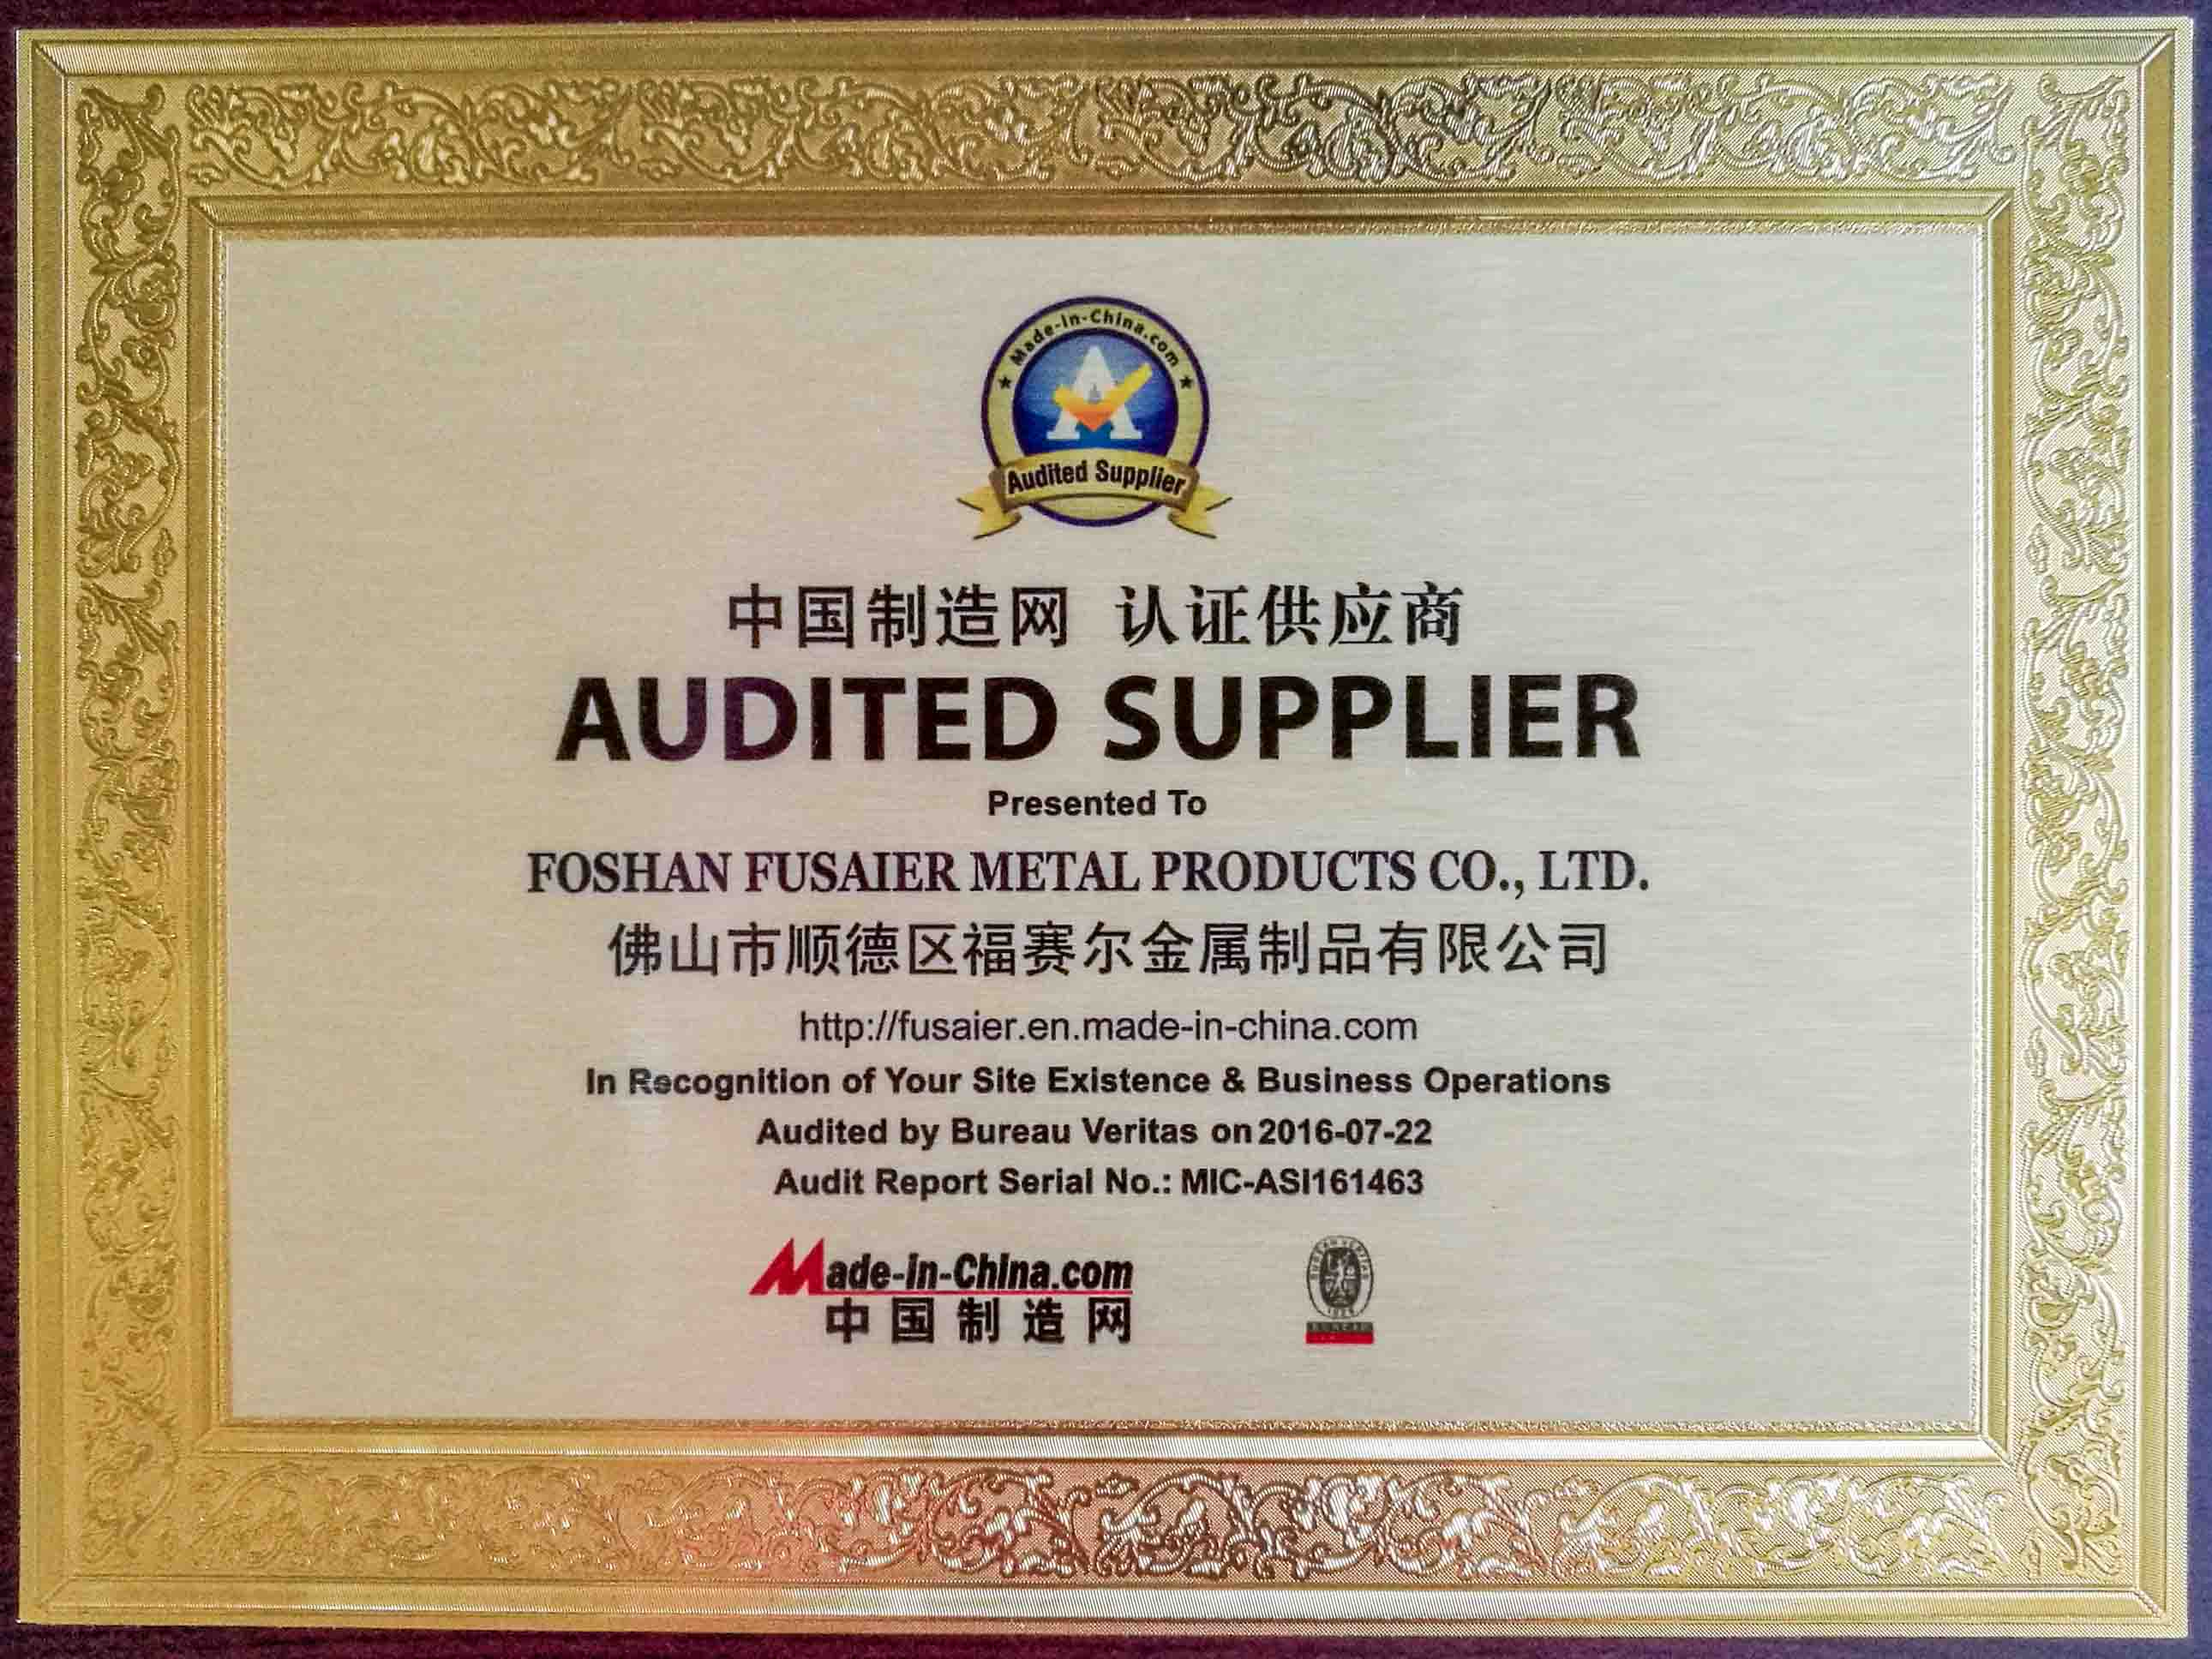 AUDITED SUPPLIER credentiales